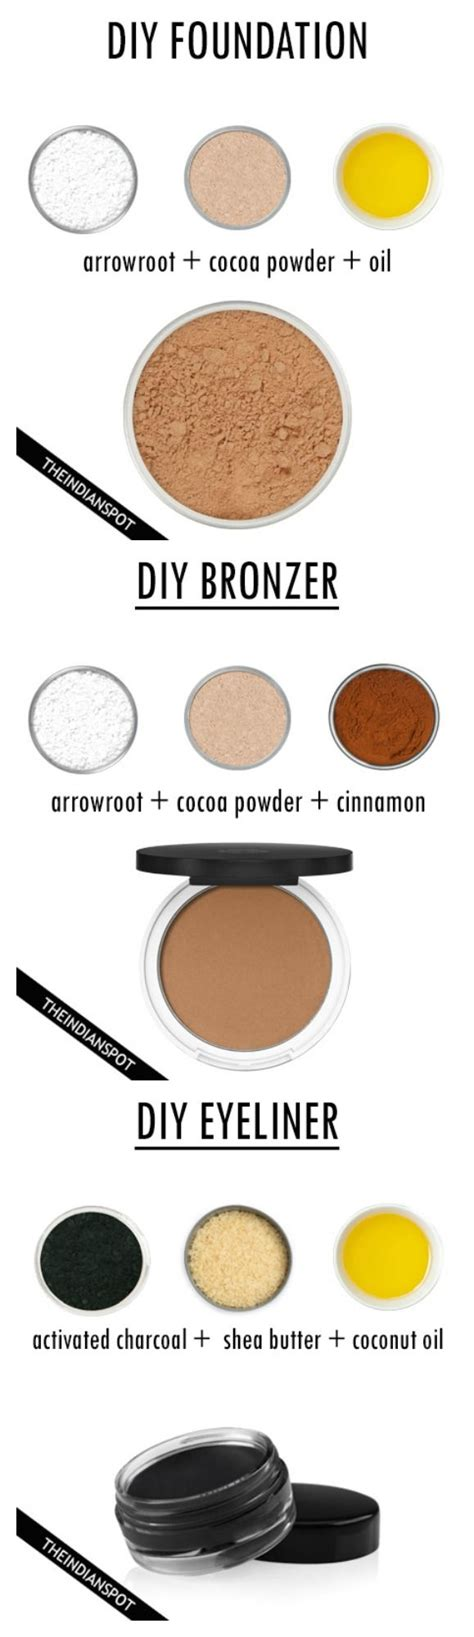 17 best ideas about diy makeup on tips makeup removers and coconut